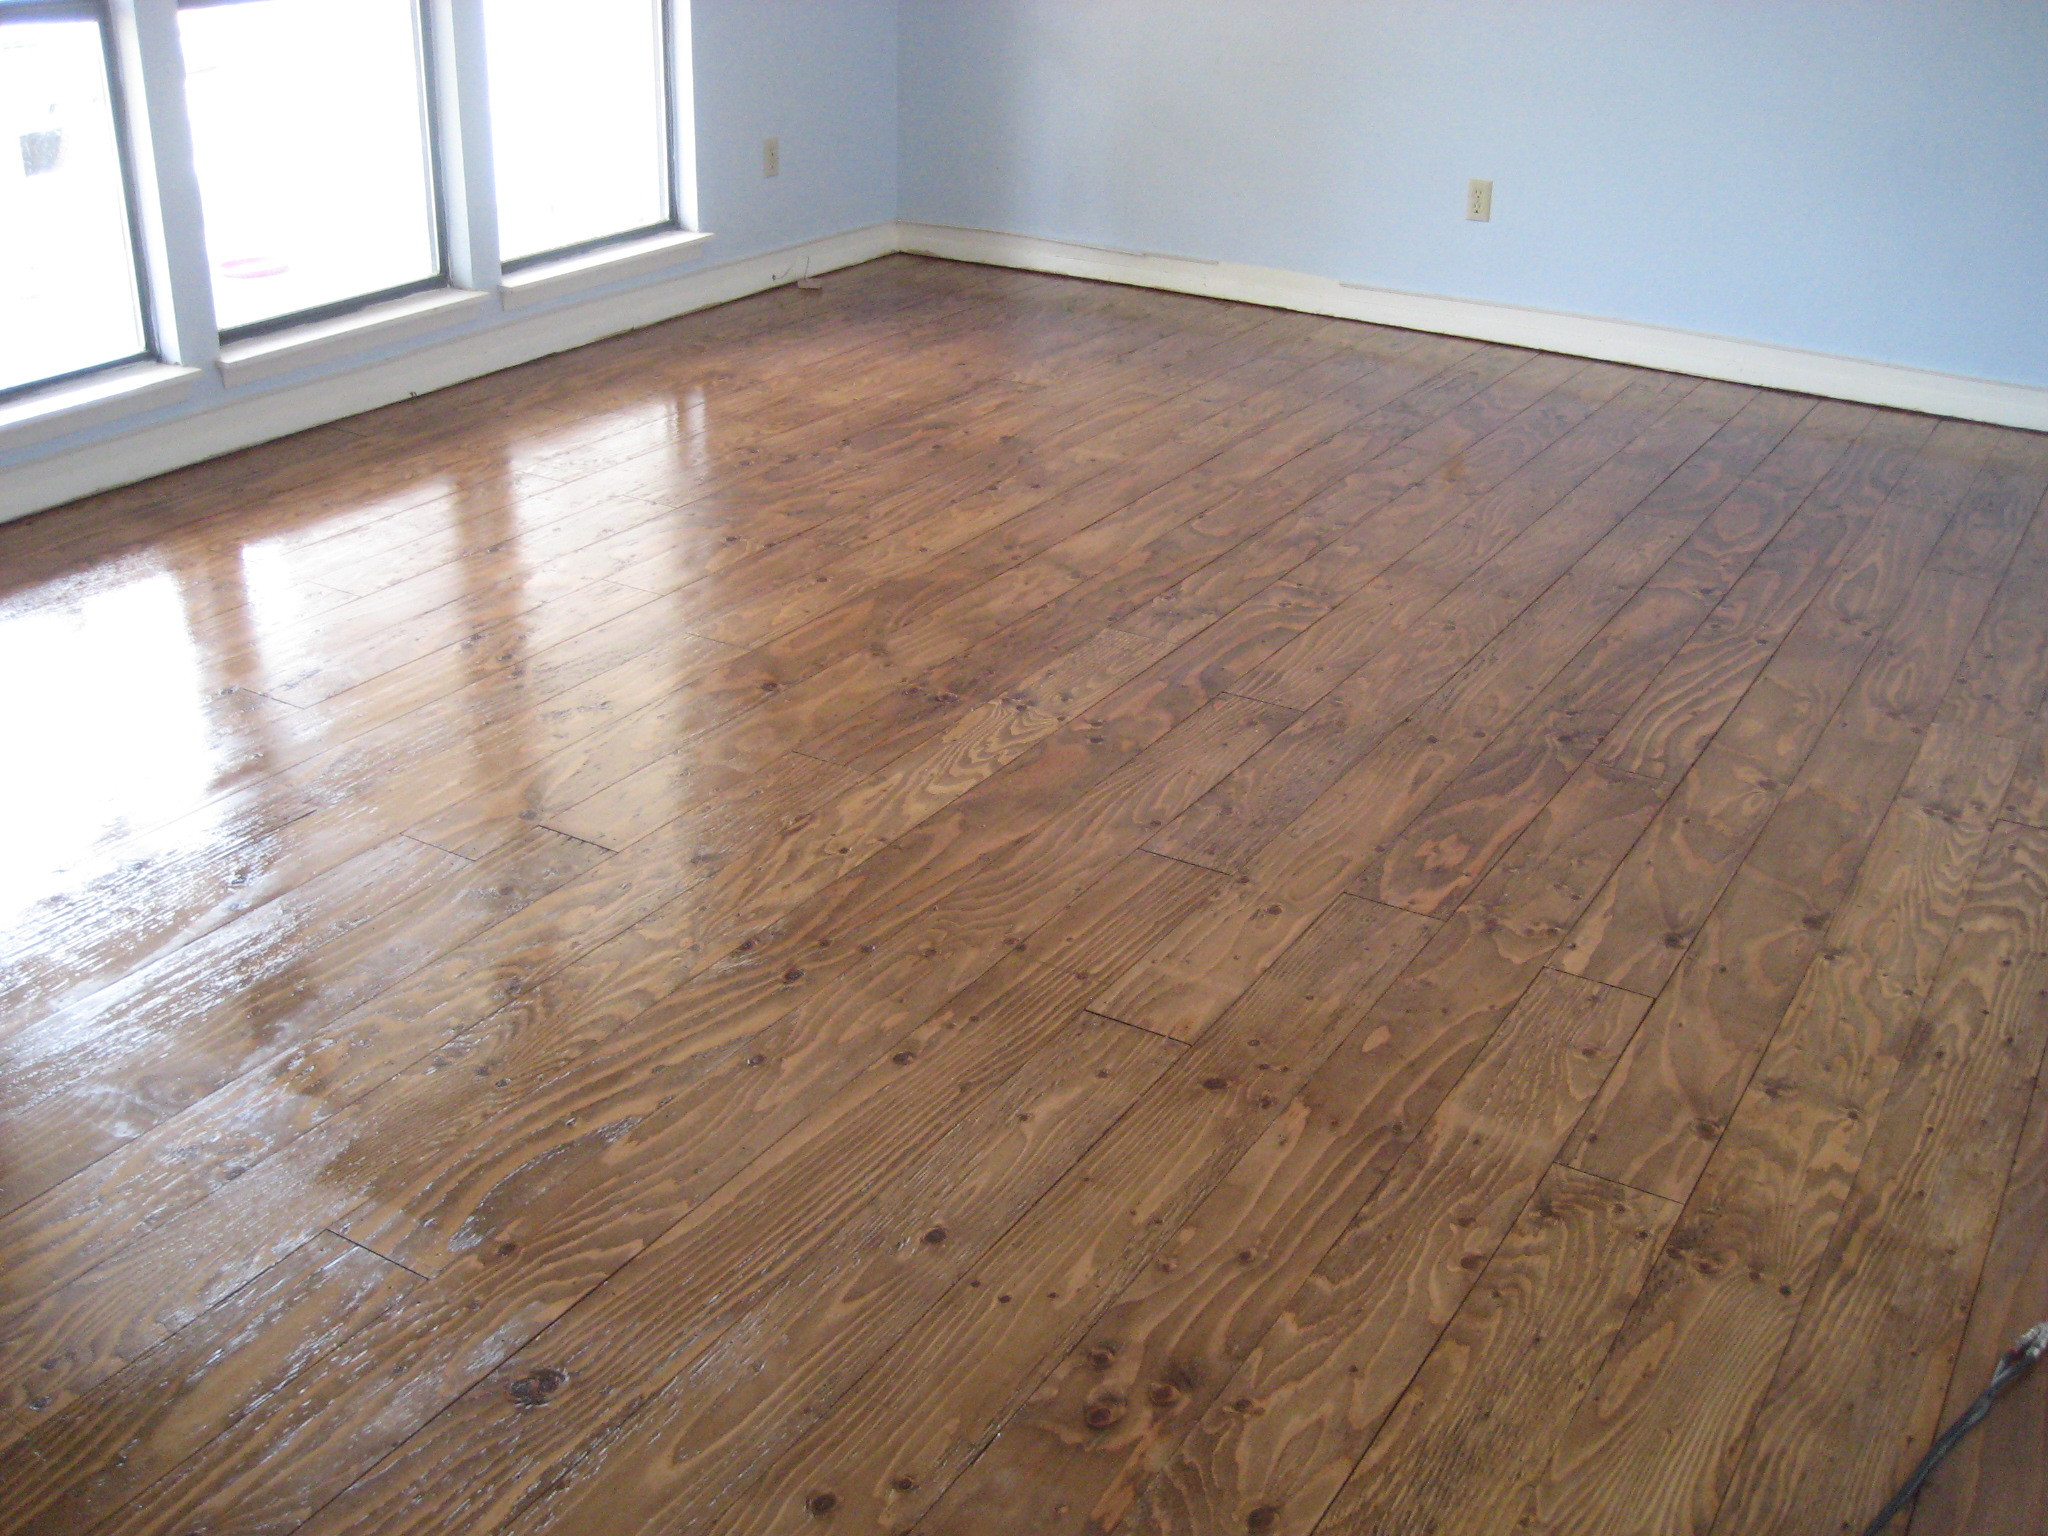 refinish hardwood floors yourself video of diy refinish hardwood floors adventures in staining my red oak regarding diy refinish hardwood floors marvelloust wood floors colors for finished basement with decobizz